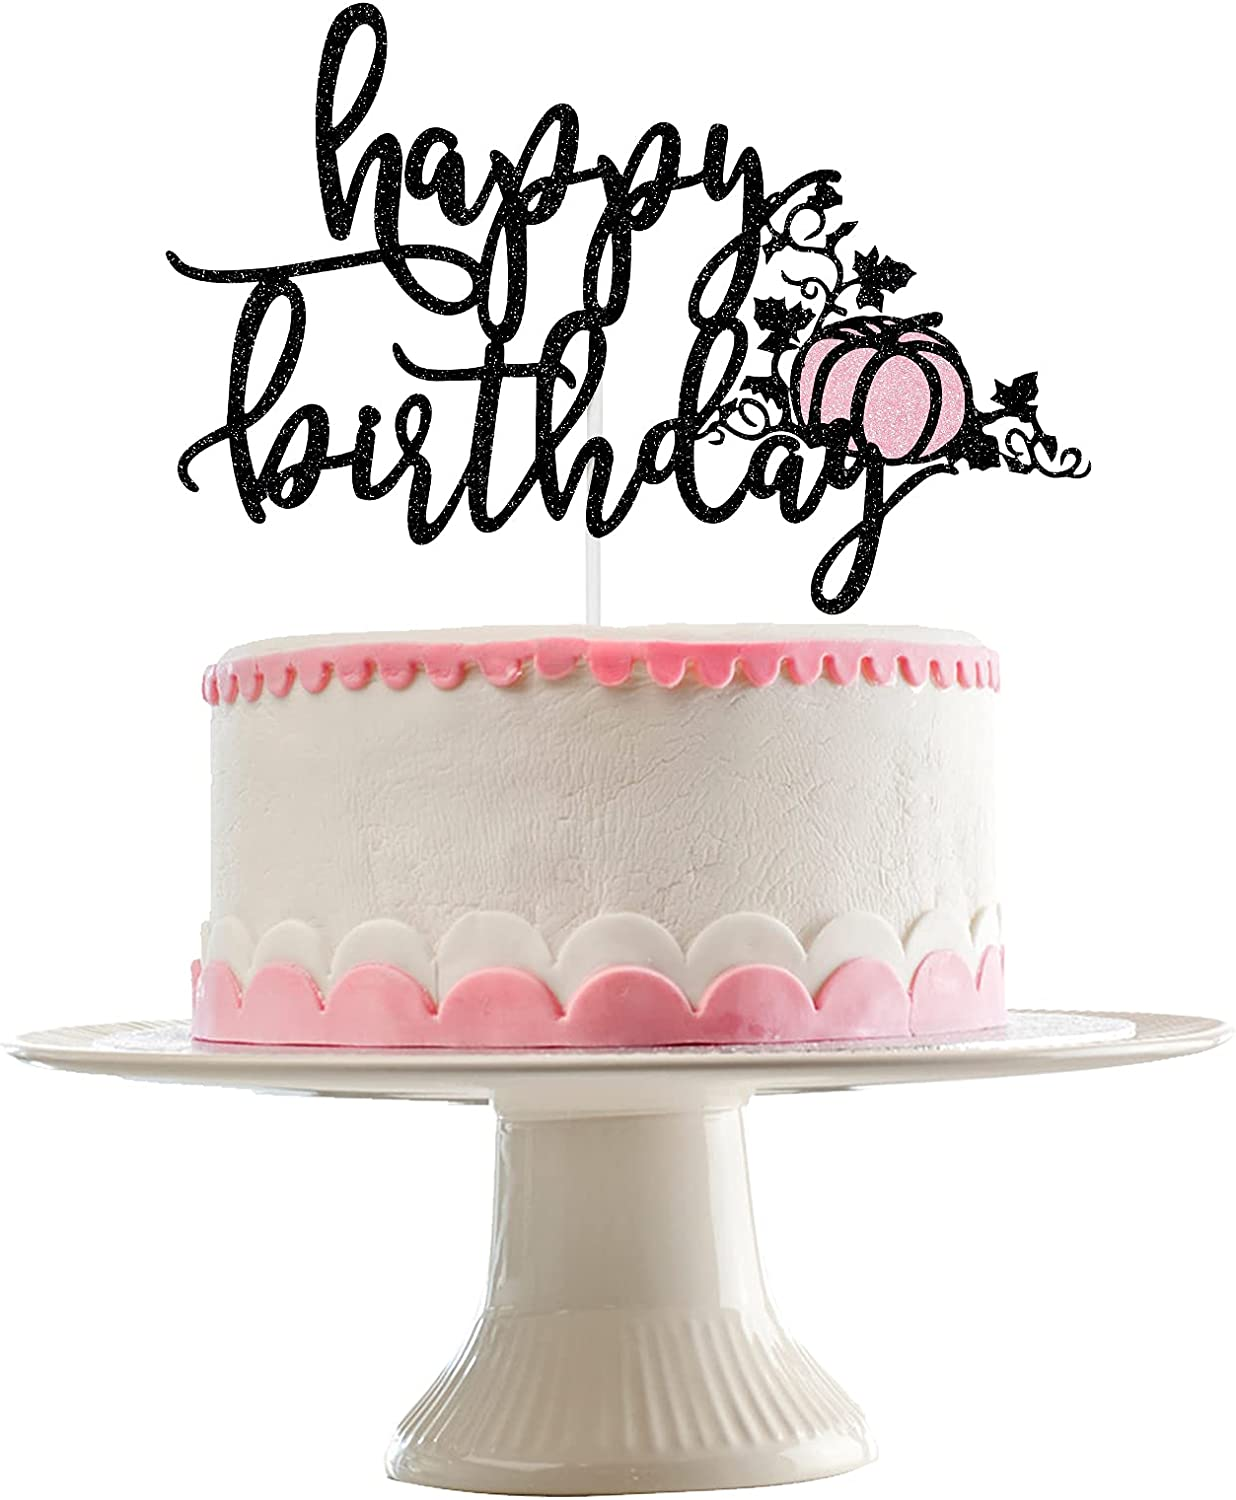 Halloween Happy Birthday Cake Topper Black and Pink Glitter- Pink and Black Halloween Decorations,Pumpkin Cake Decor,Pumpkin Birthday Cake Topper,Halloween Birthday Cake Decorations